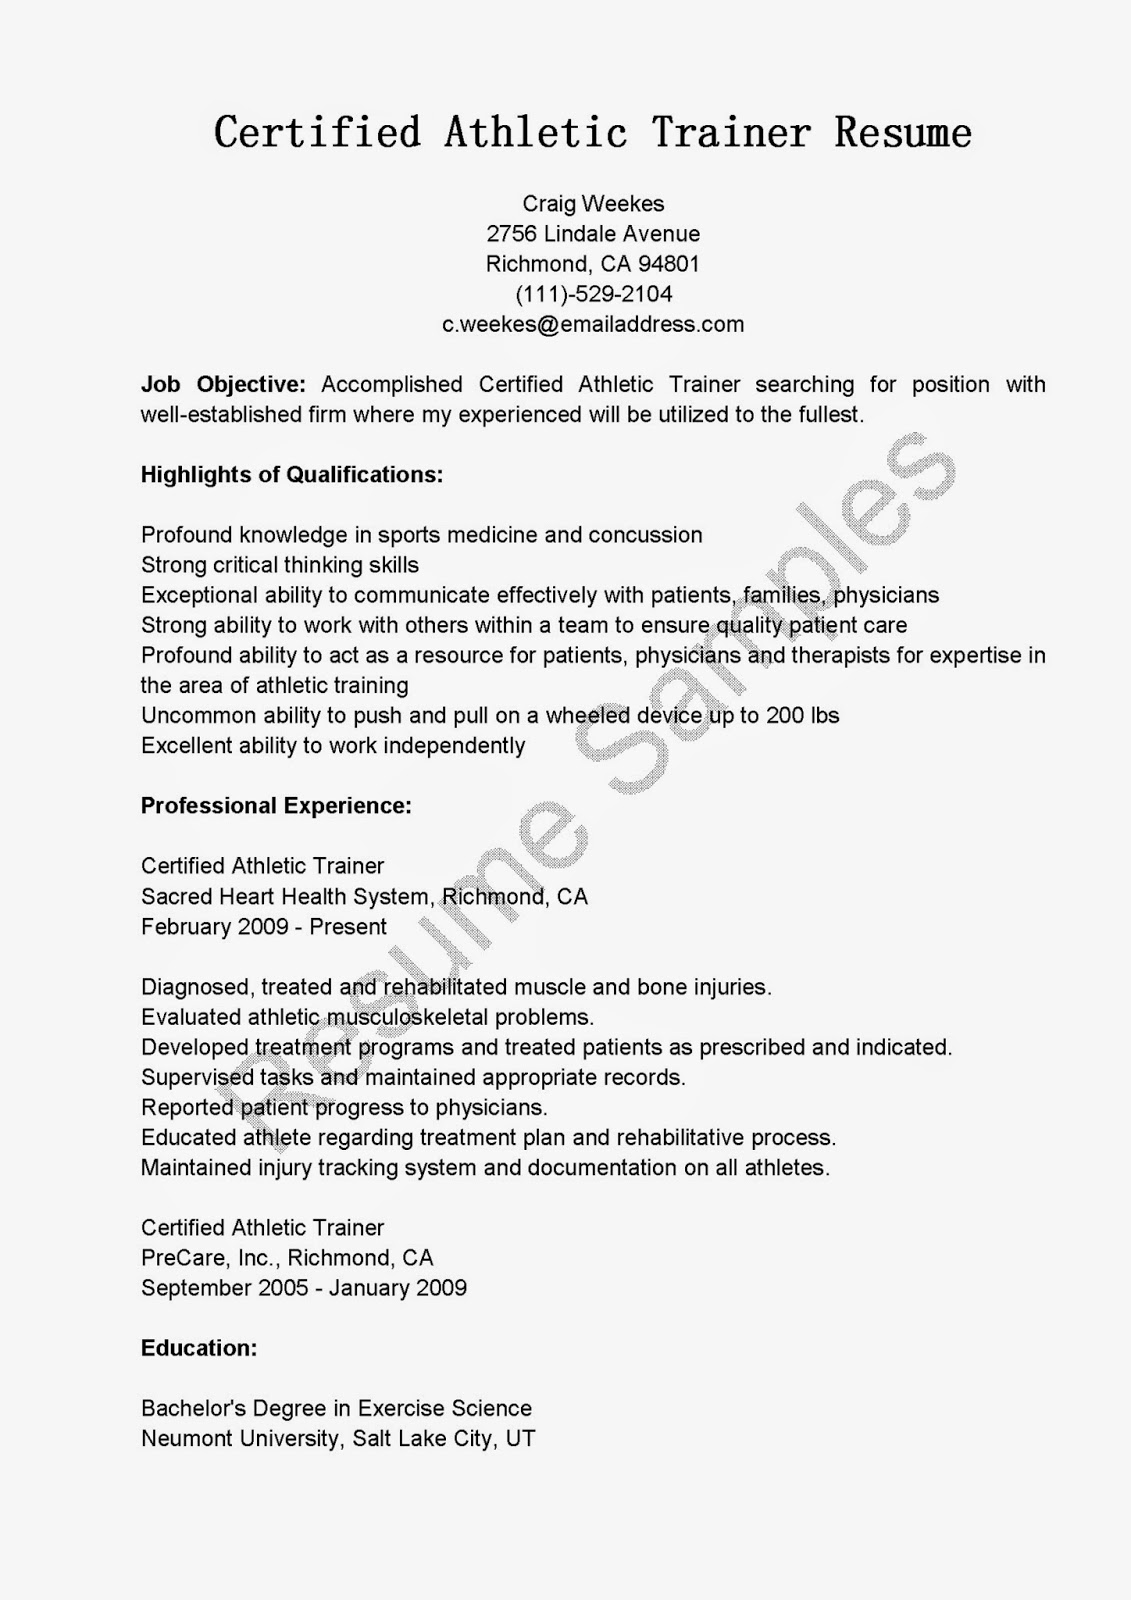 resume sles certified athletic trainer resume sle